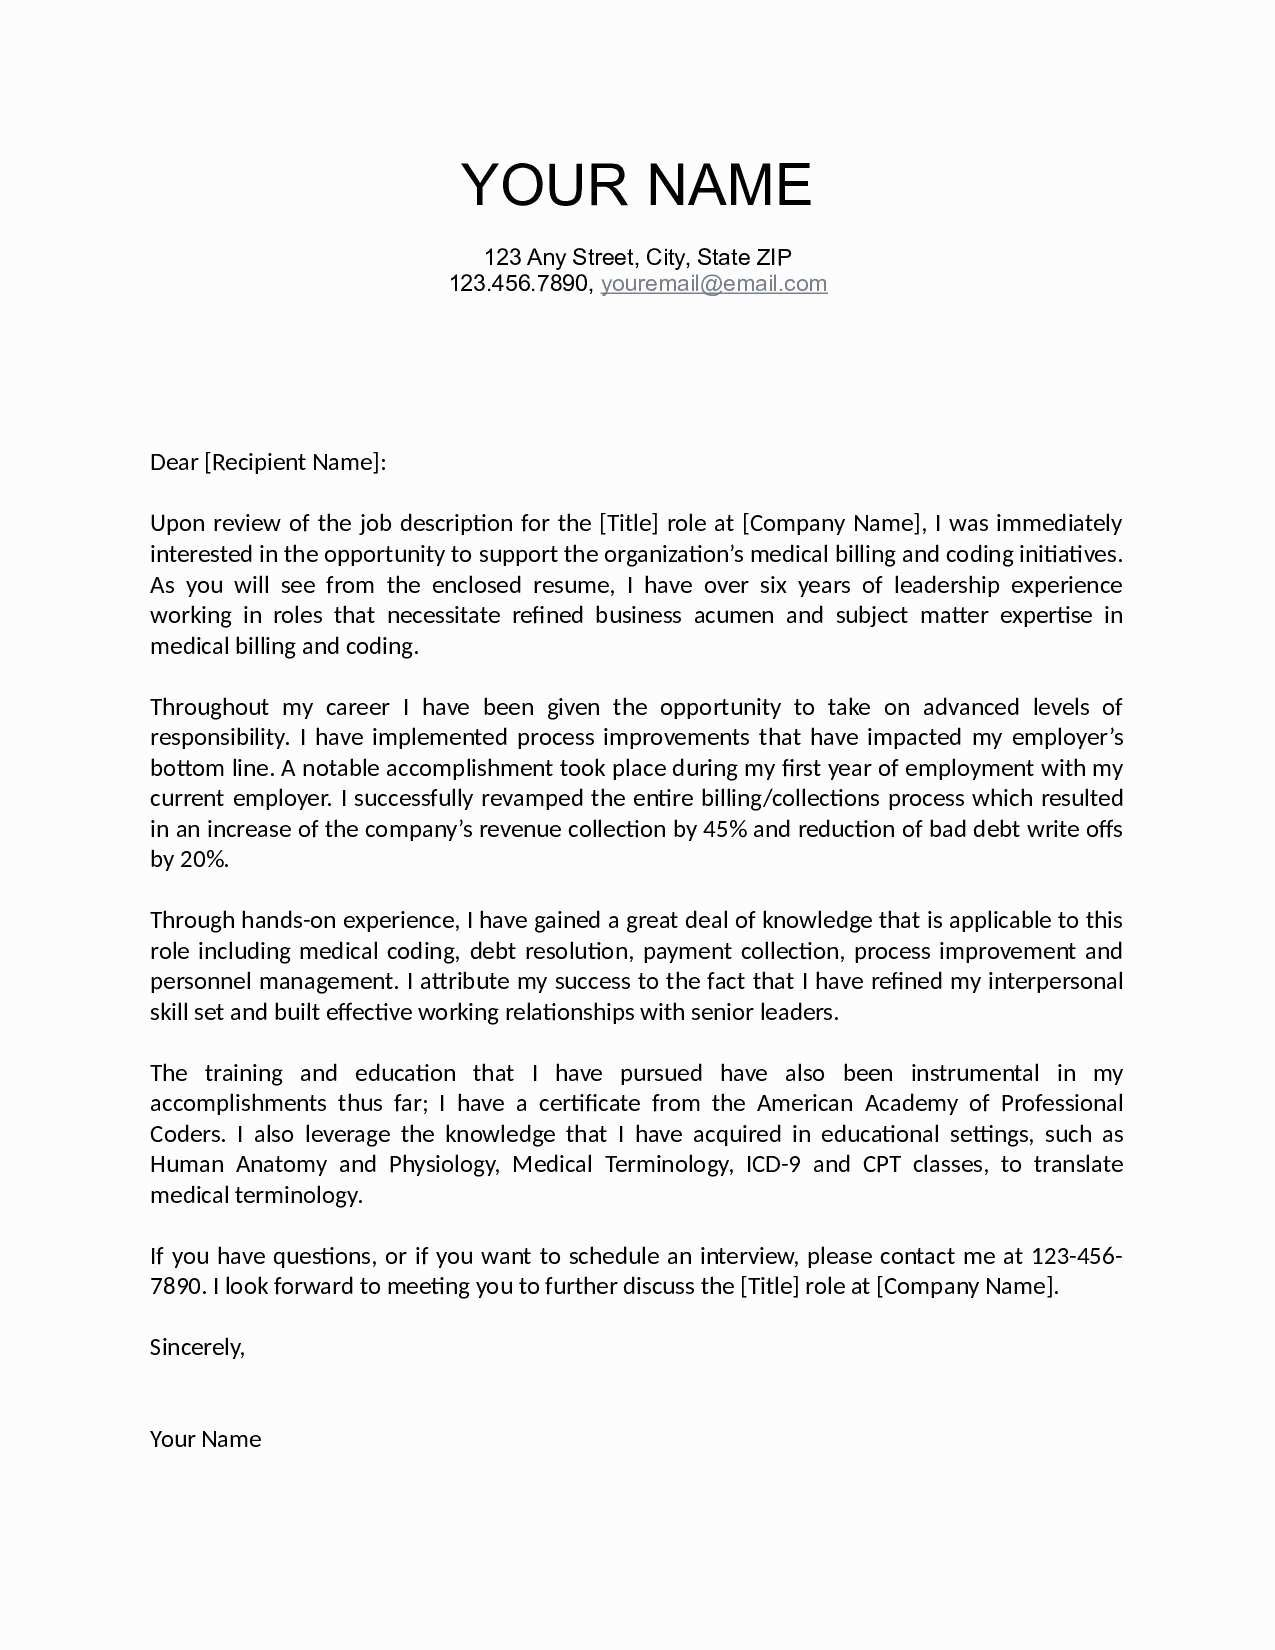 Letter Of Intent for Job Template - Writing A Letter Intent for A Job New Job Fer Letter Template Us